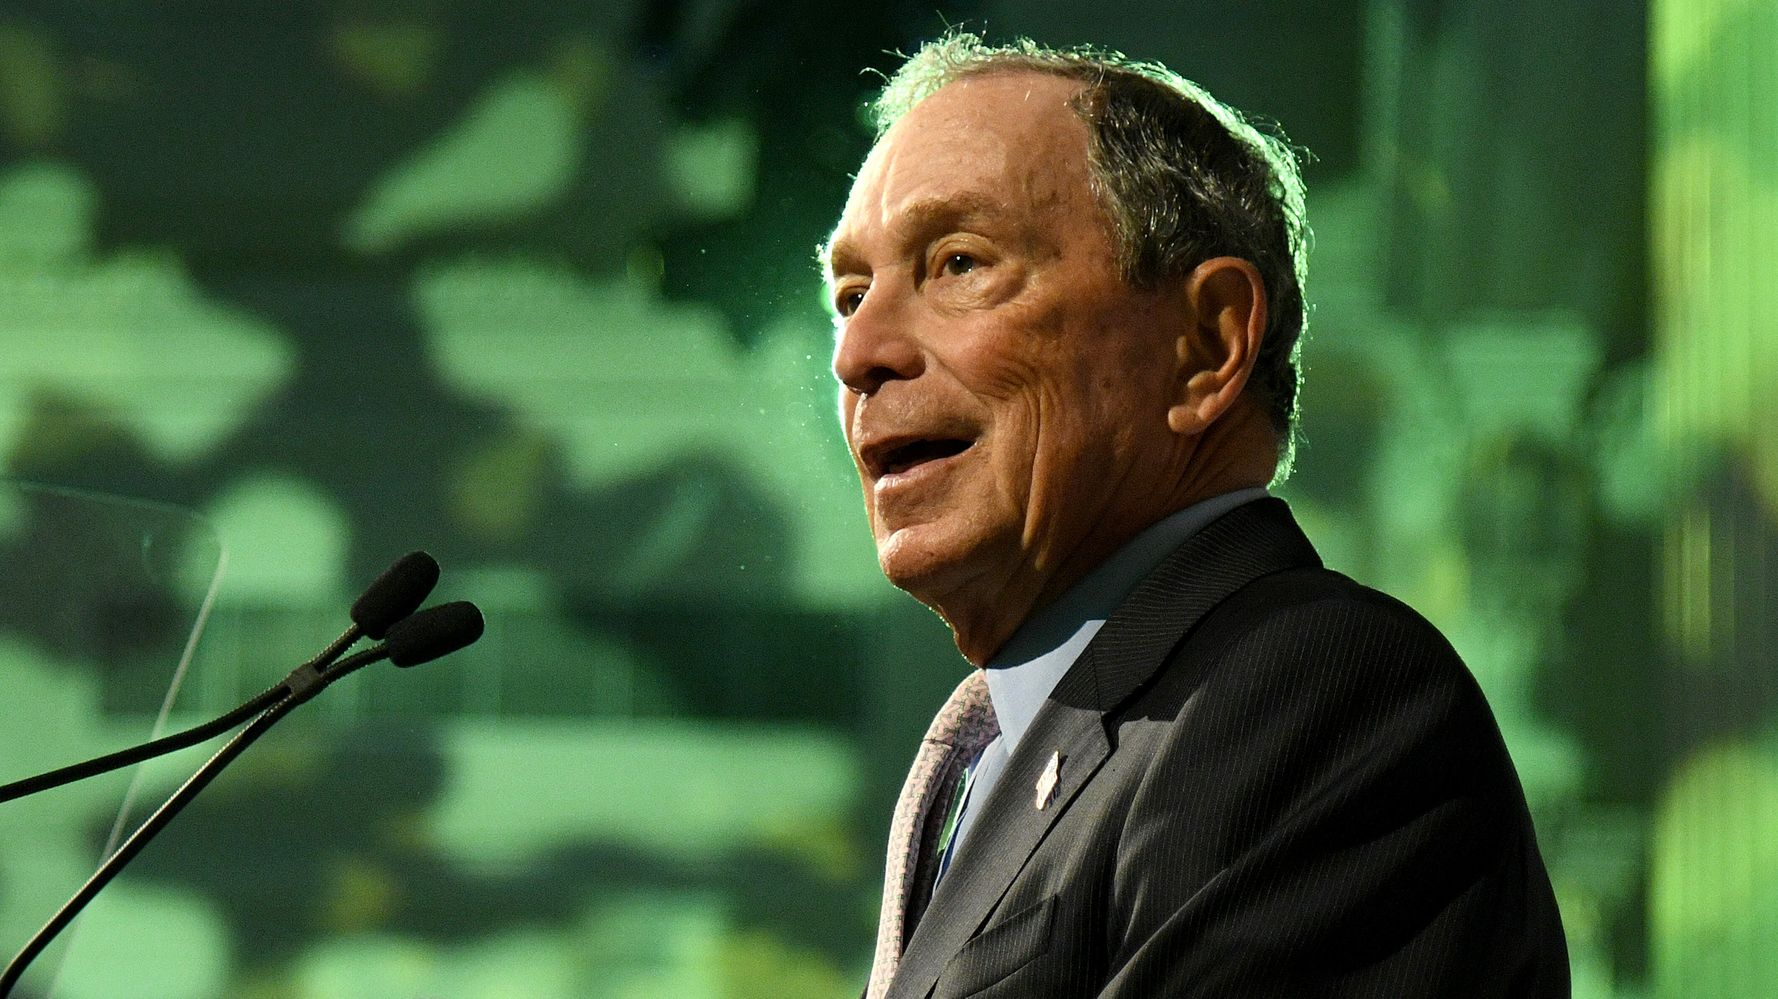 Michael Bloomberg Officially Announces 2020 Presidential Run